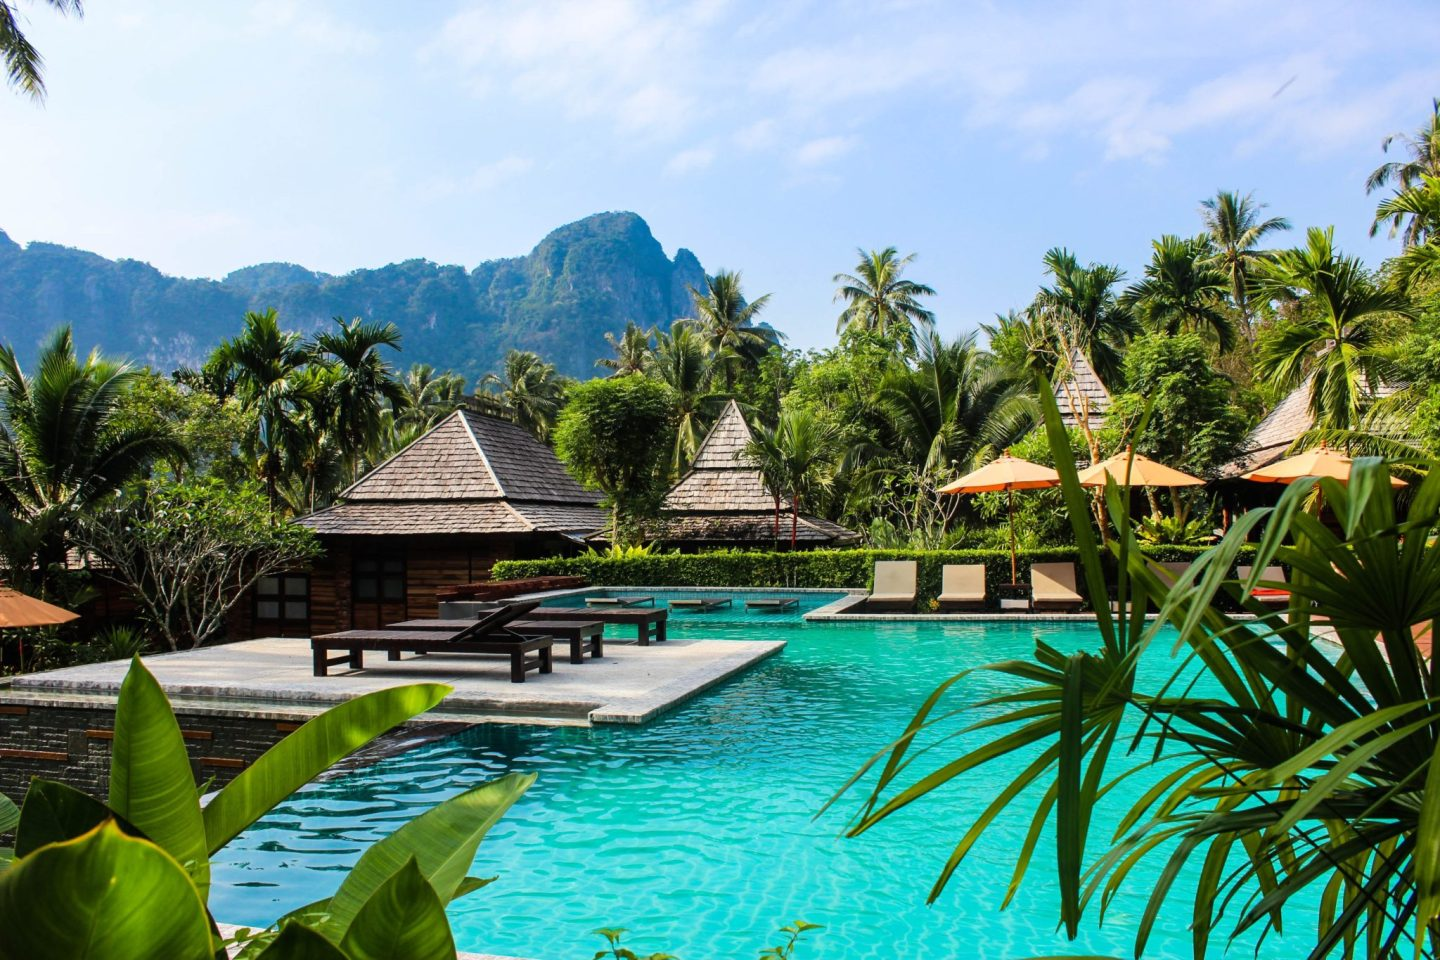 Luxury villa with walk ways and palm trees in Thailand